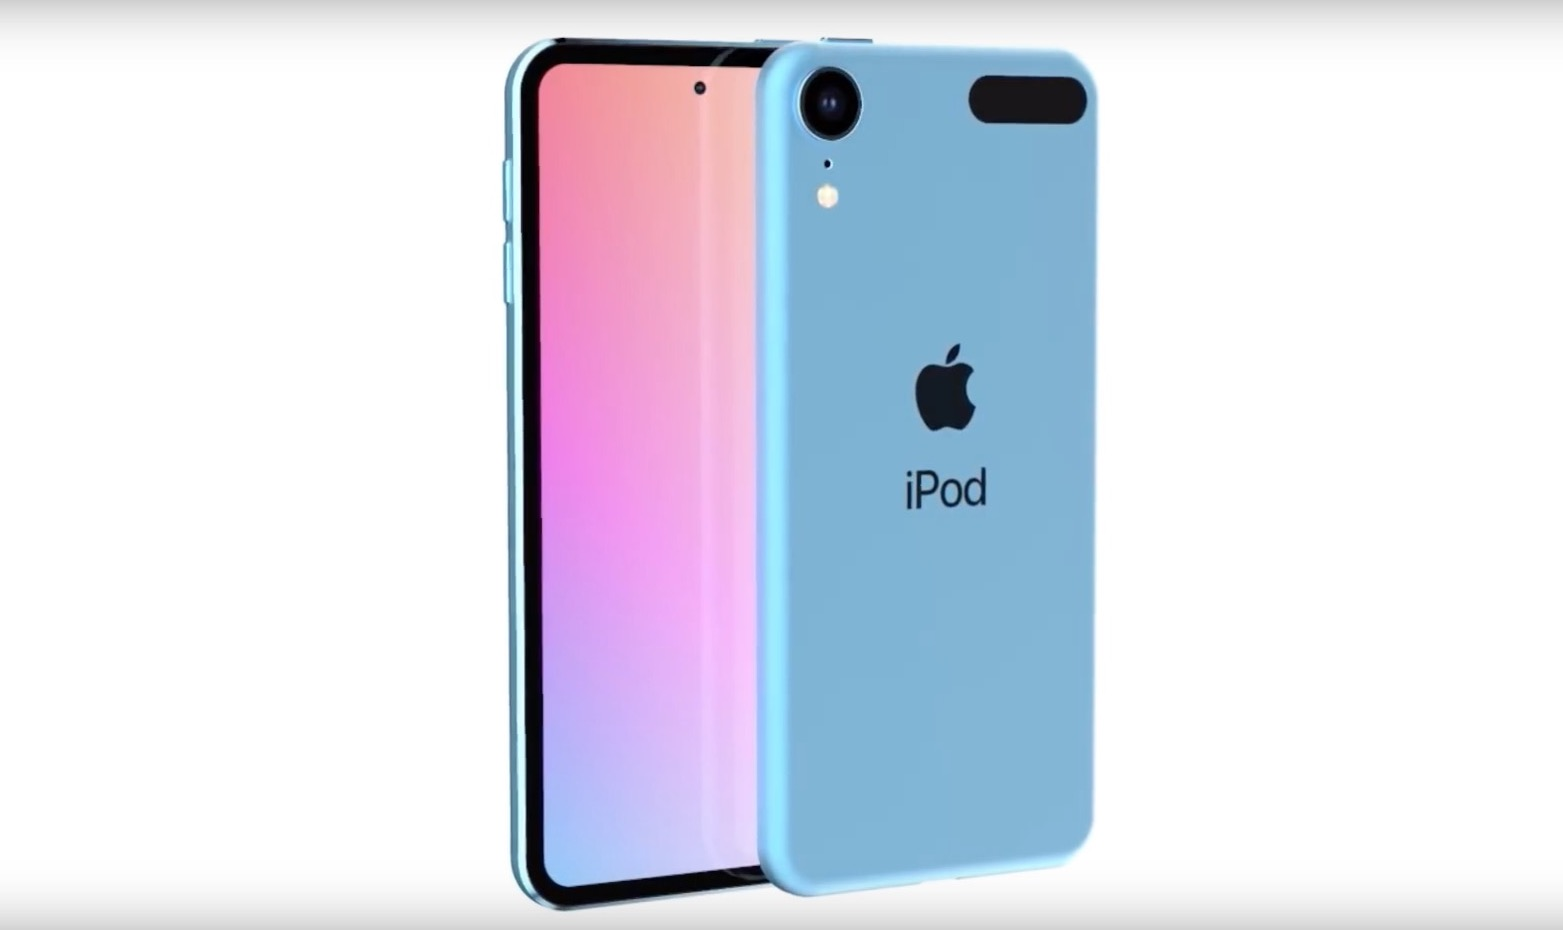 Ipod Touch Concept Image1